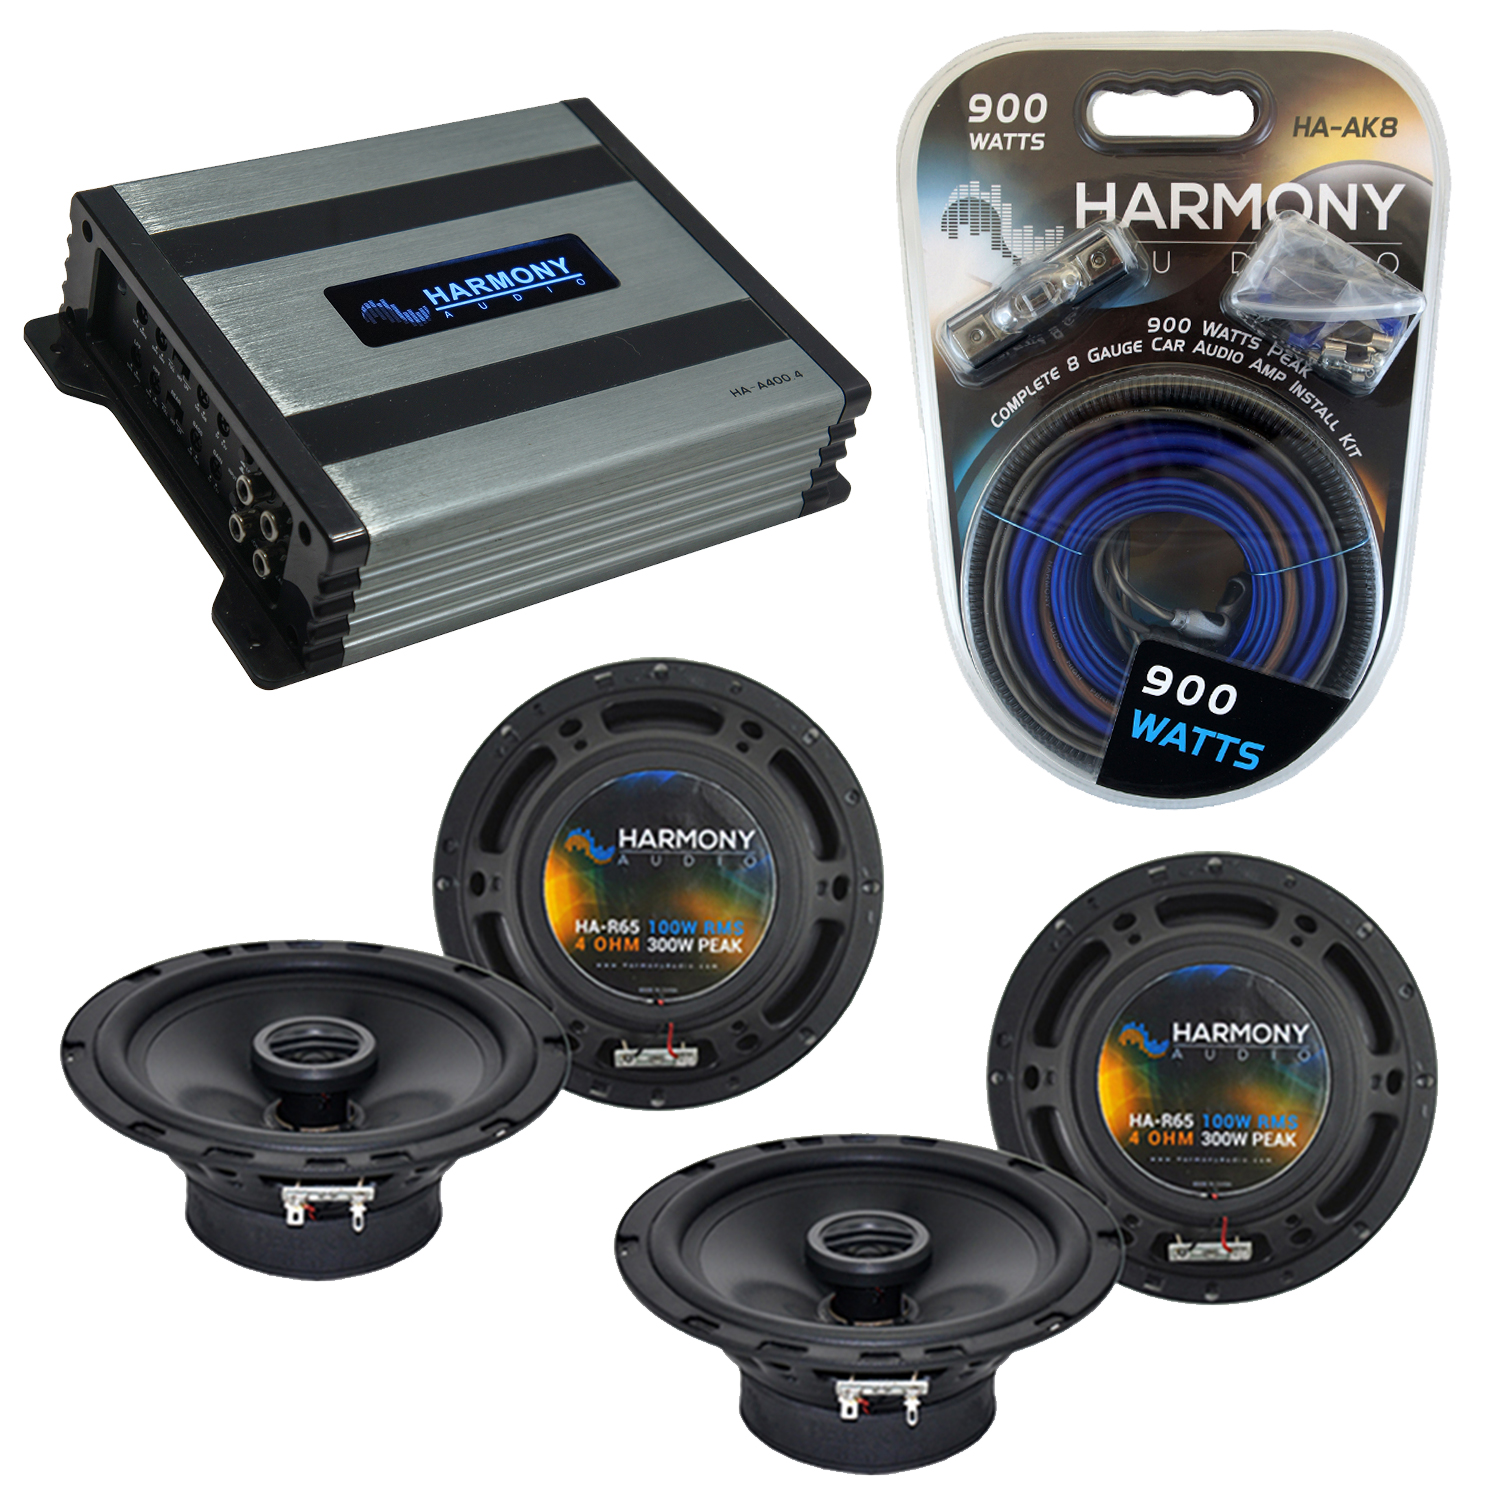 Compatible with Volkswagen Cabrio 1995-2002 OEM Speaker Replacement Harmony (2) R65 & Harmony HA-A400.4 Amp